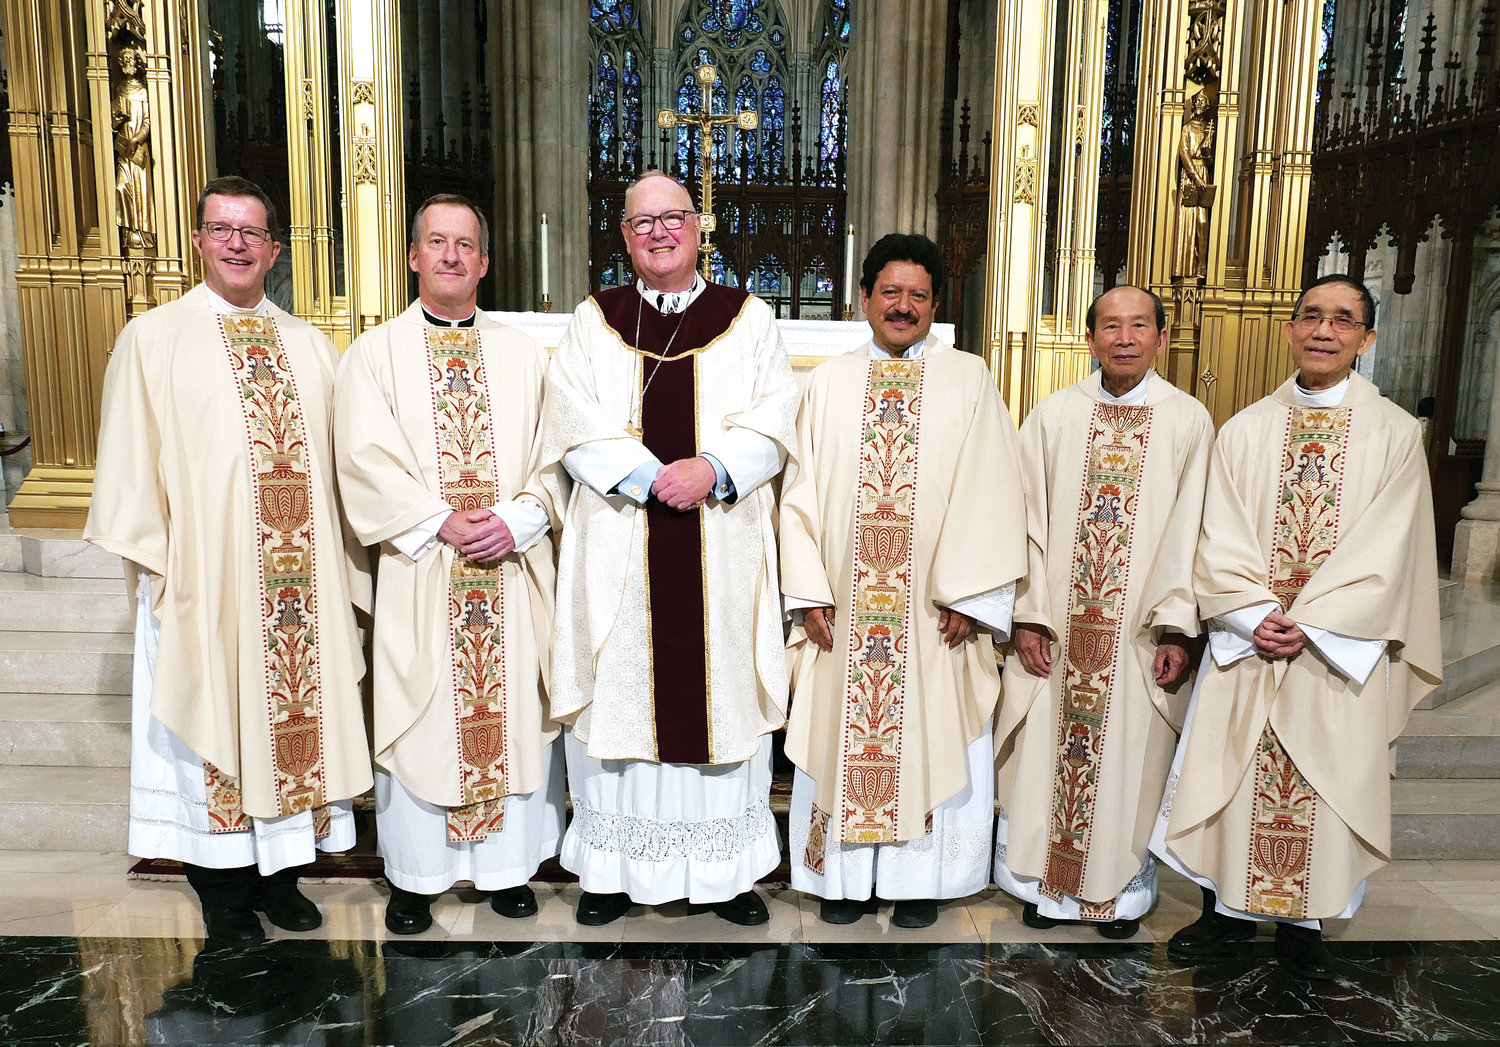 Joining Cardinal Dolan are, from left: Father Rees Doughty, Father Mark Vaillancourt, Father Segundo Benjamin Palacios, Father Ignatius Vu and Father Louis Van Thanh.